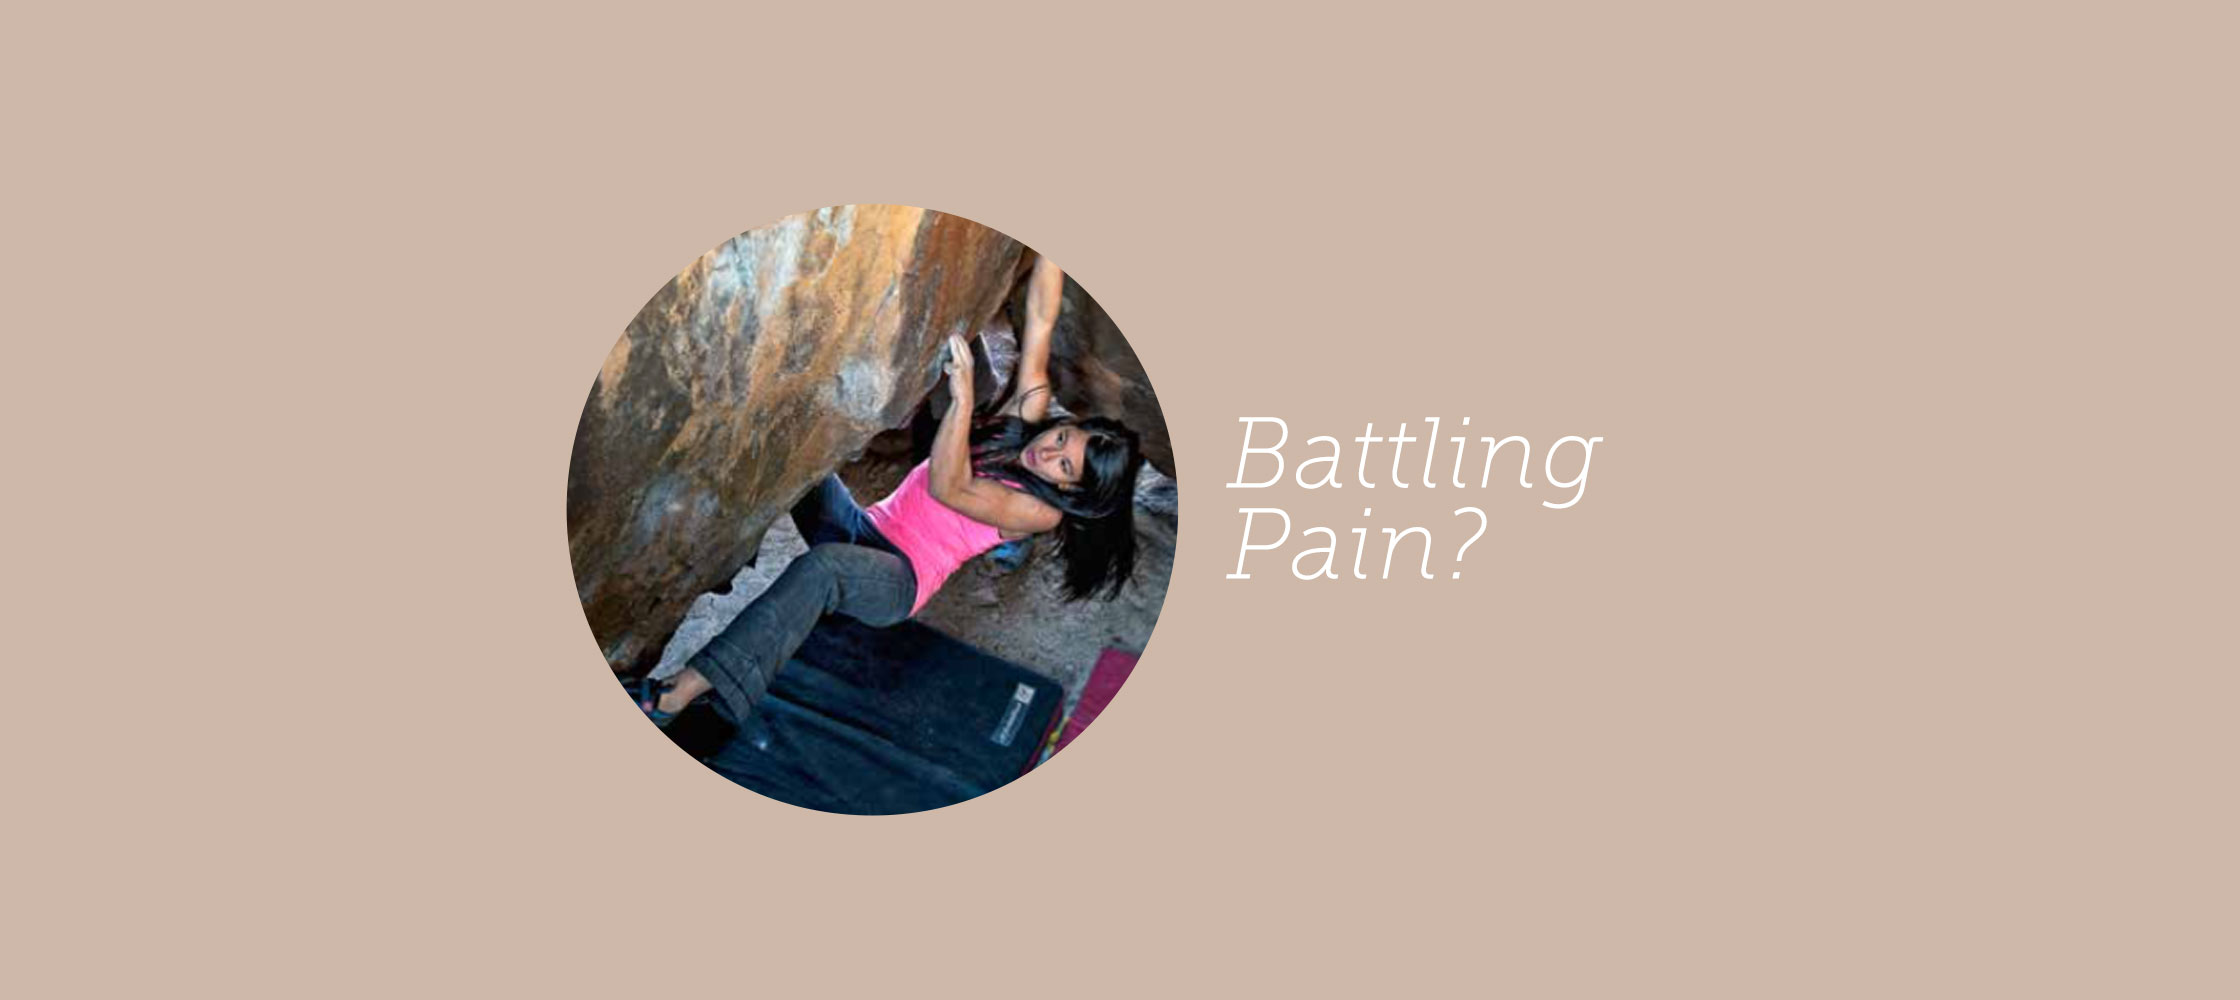 203-battling-pain